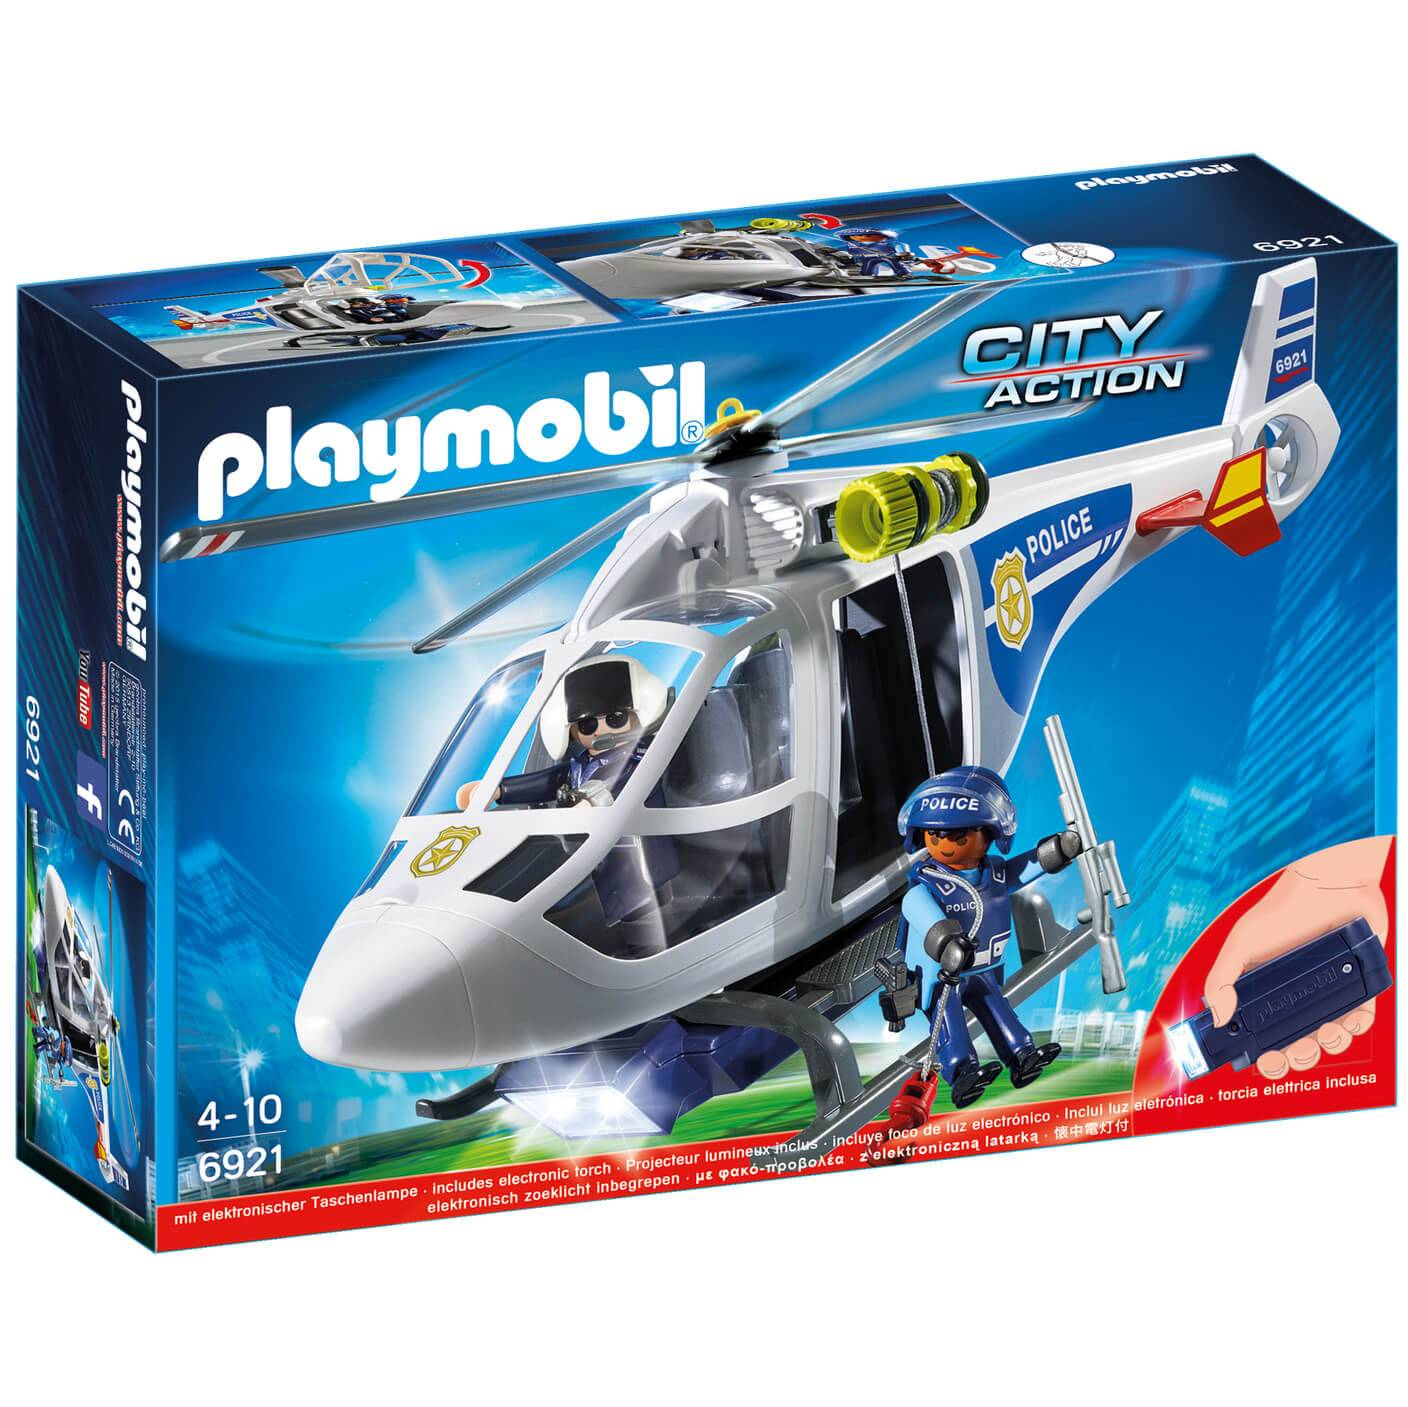 Playmobil City Action Police Helicopter with LED Searchlight (6921)